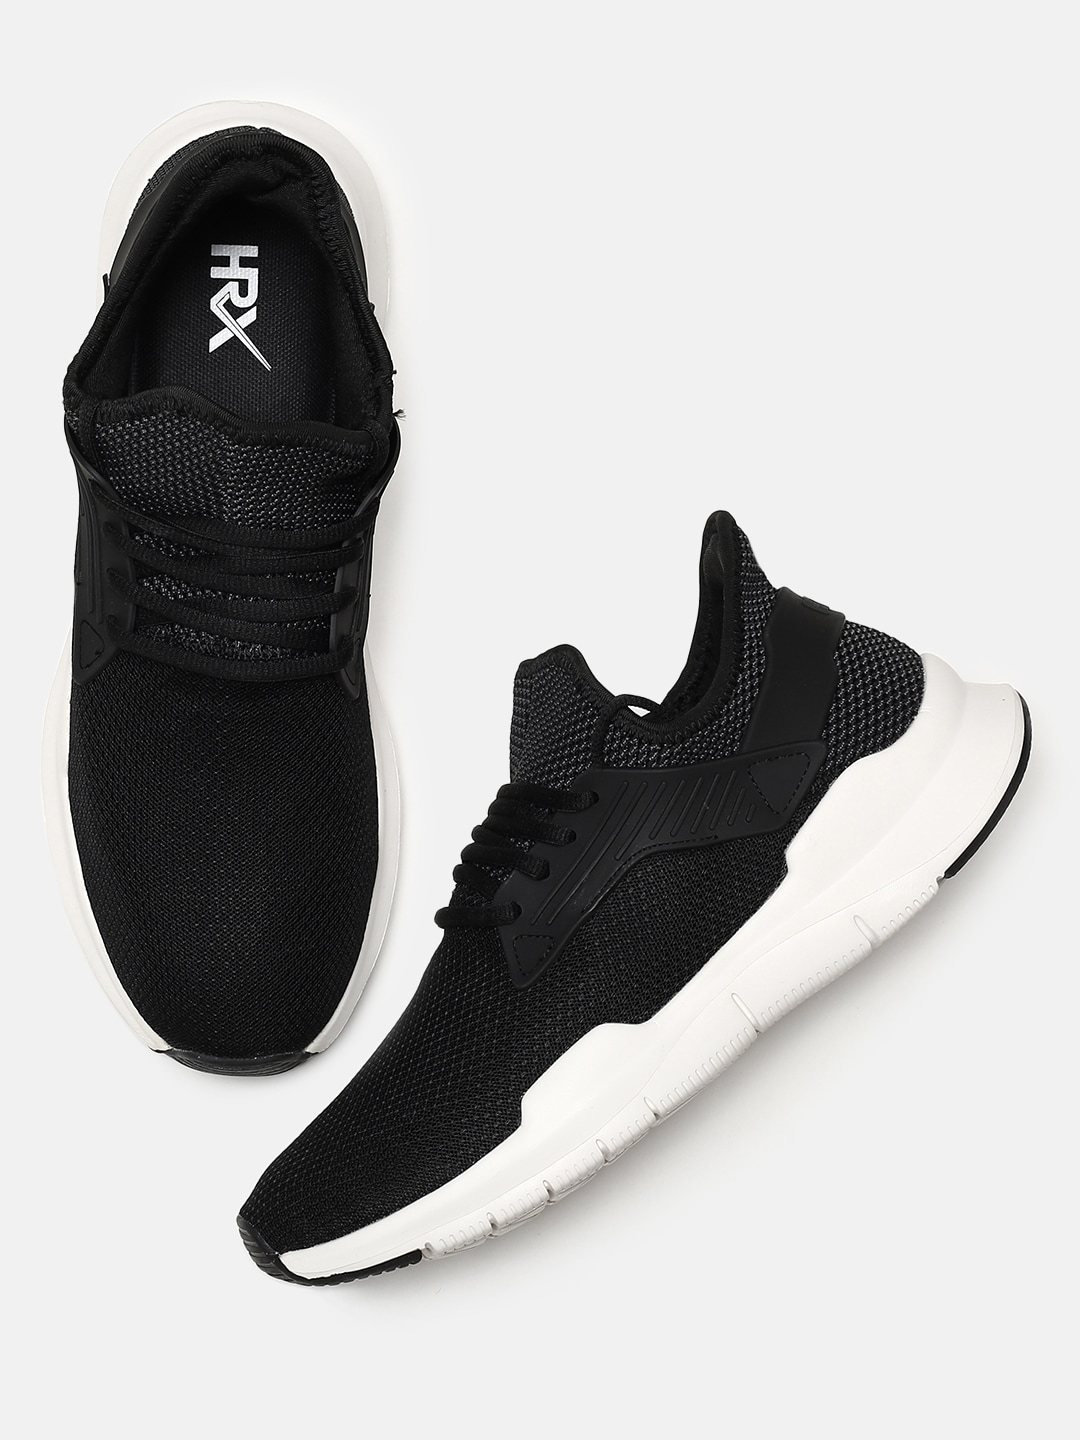 Shoes By Black 1 Running Hrx Men Flex Roshan Rep Hrithik strCQdh